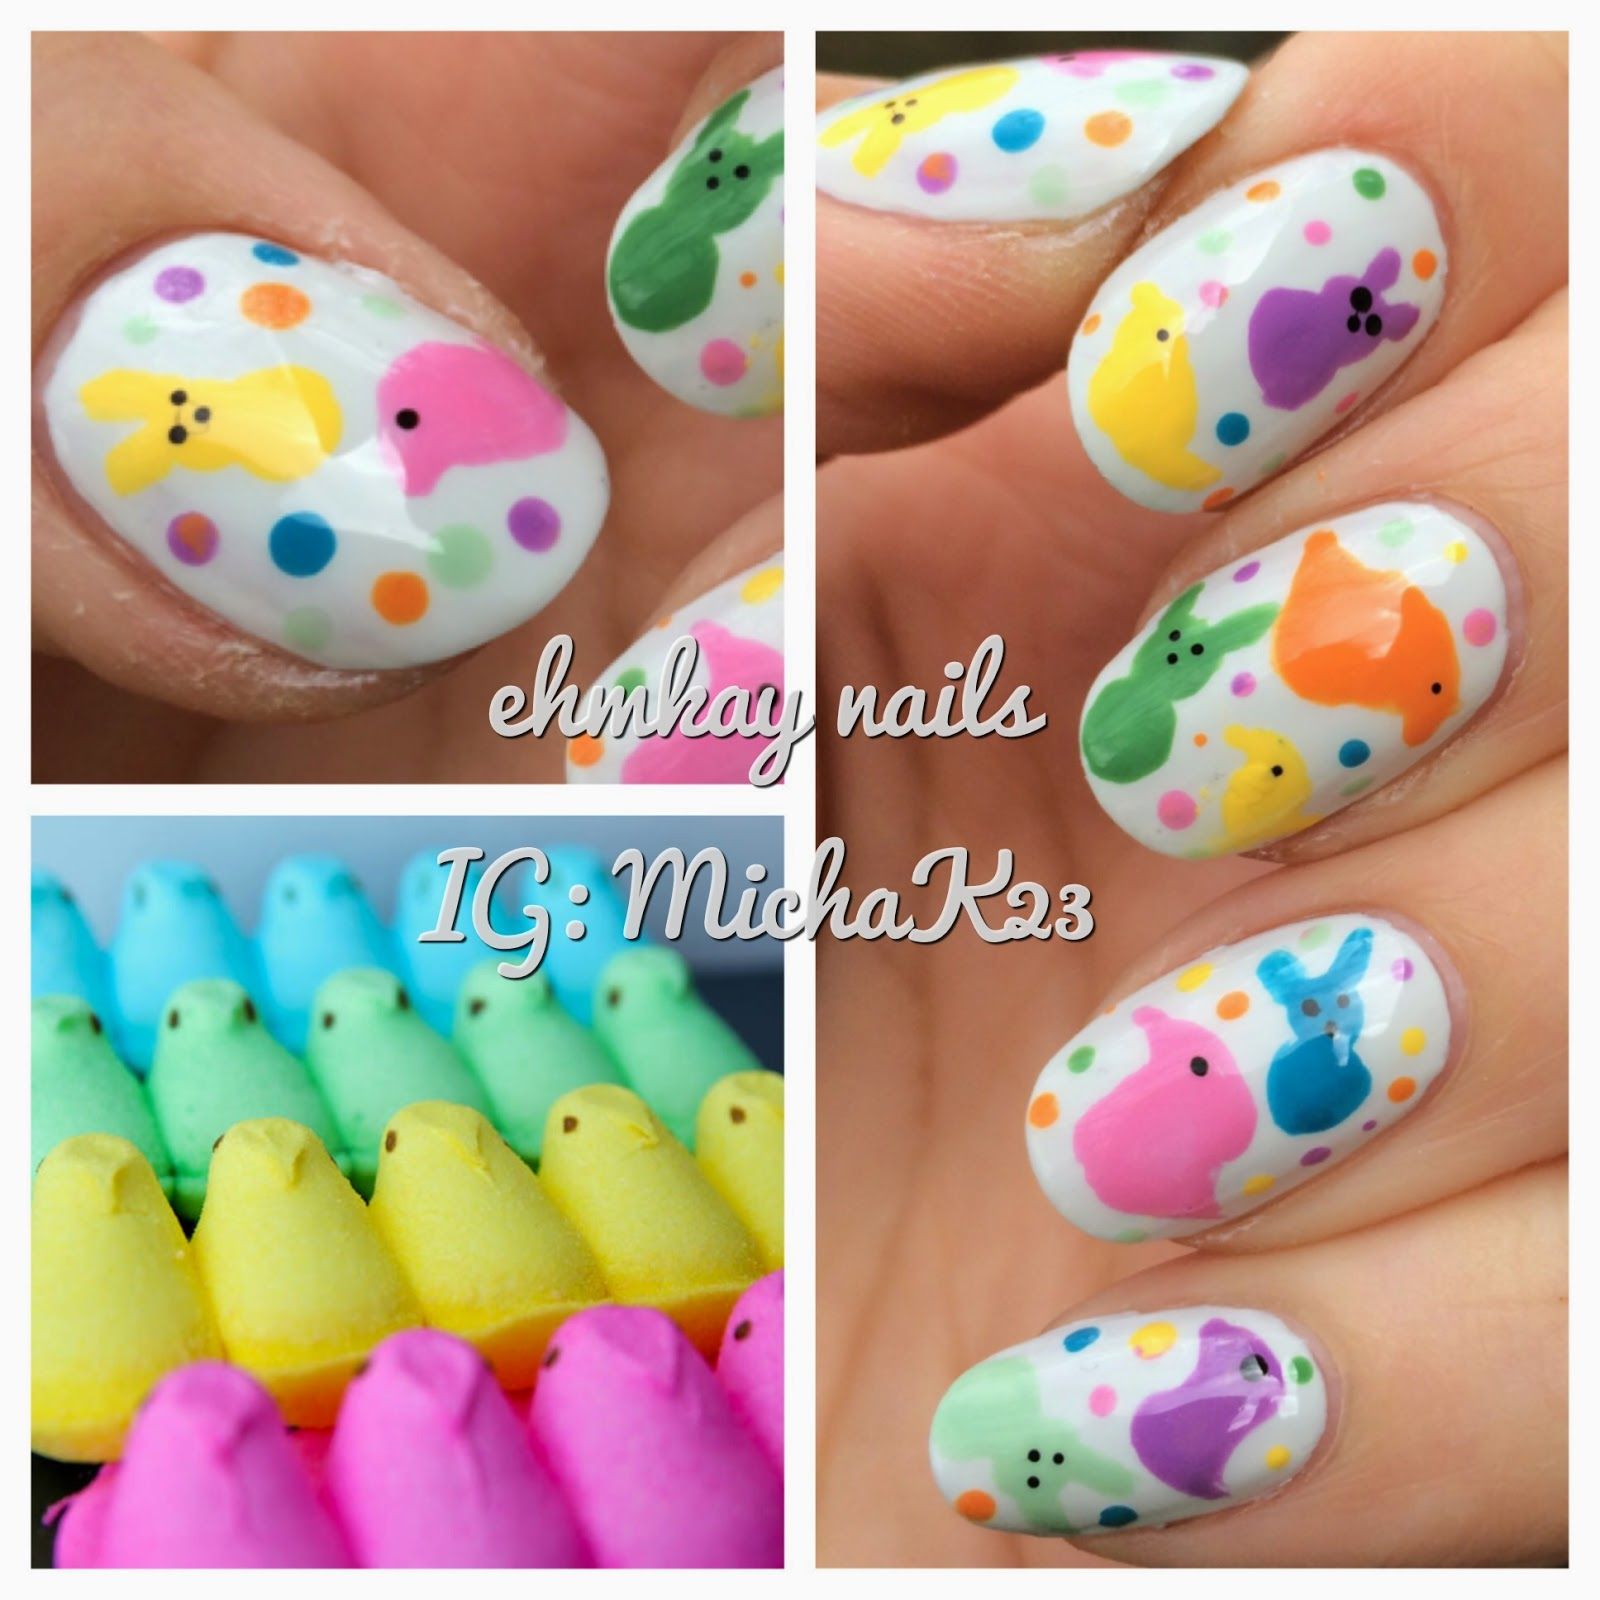 ehmkay nails: Peeps Marshmallow Nail Art